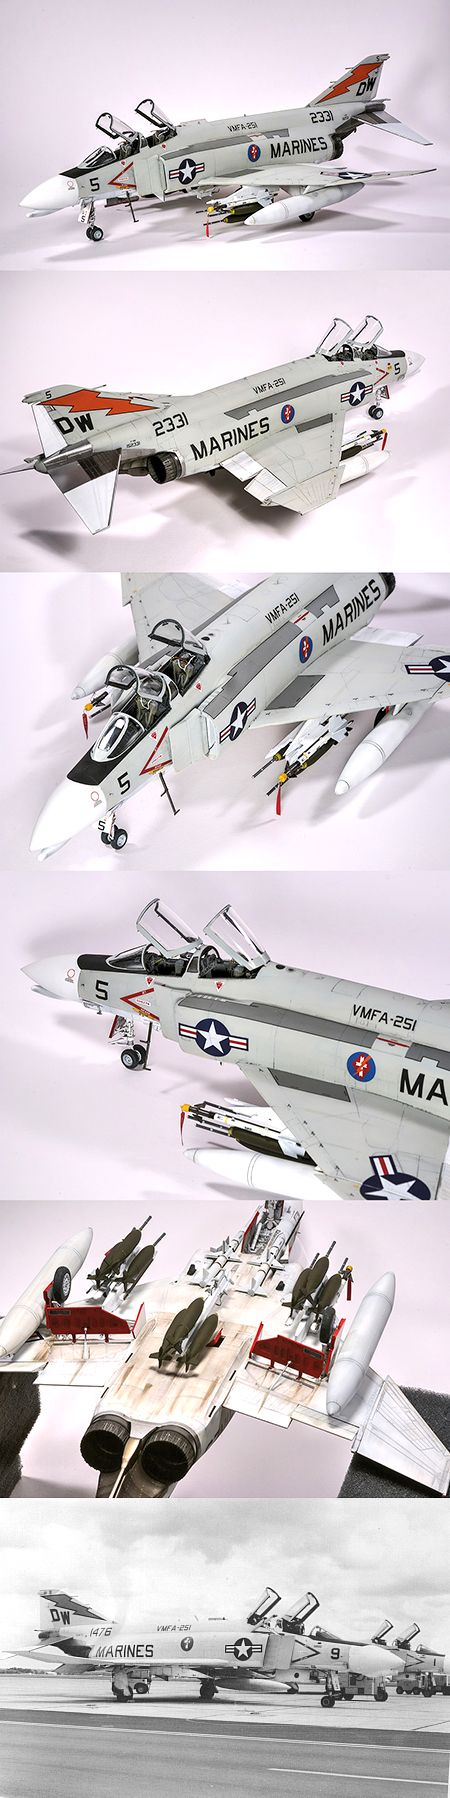 1:48 Academy F-4B with various aftermarket goodies and Furball Decals.